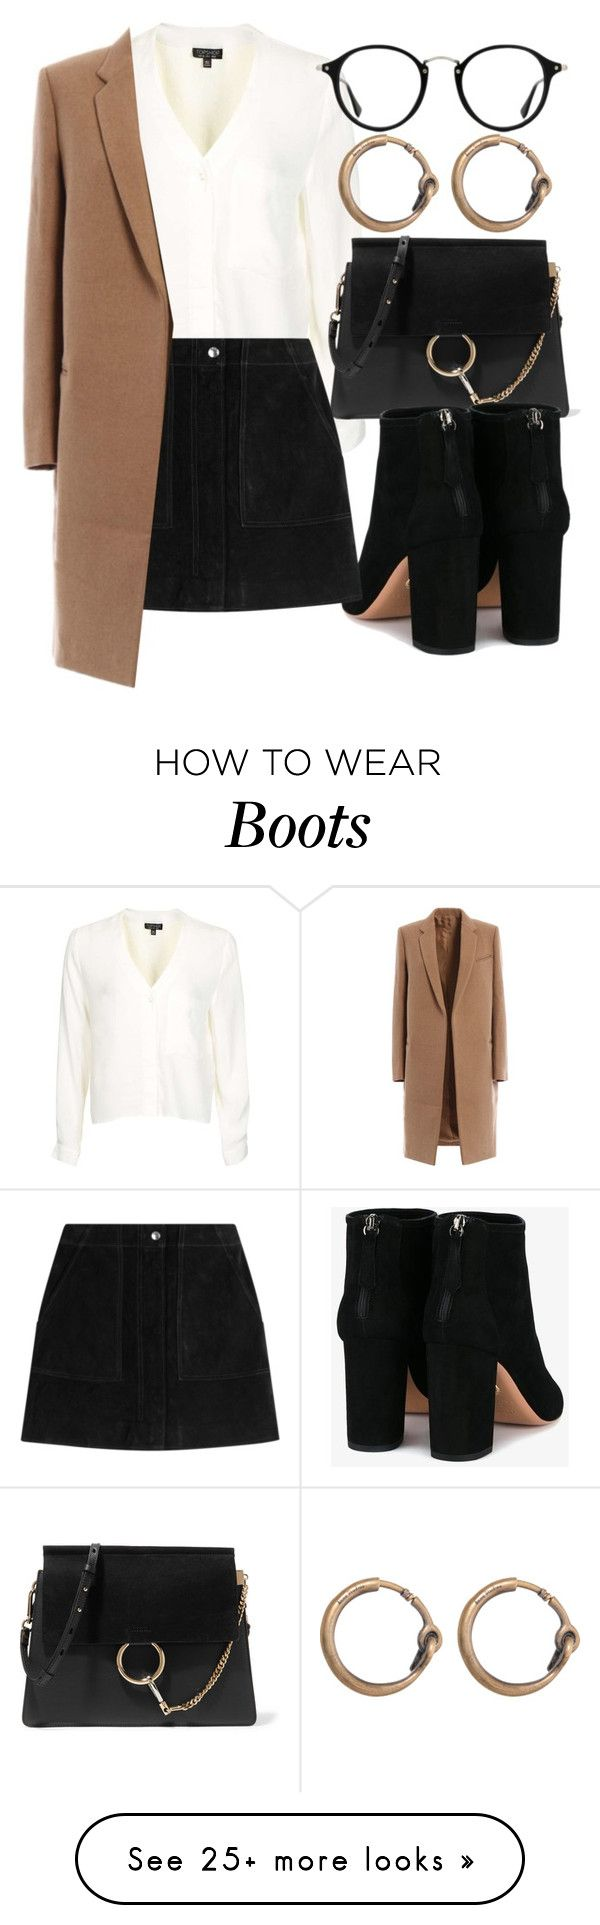 """""""Untitled #6446"""" by laurenmboot on Polyvore featuring Topshop, Chloé, Aquazzura, rag & bone, Ray-Ban and Acne Studios"""